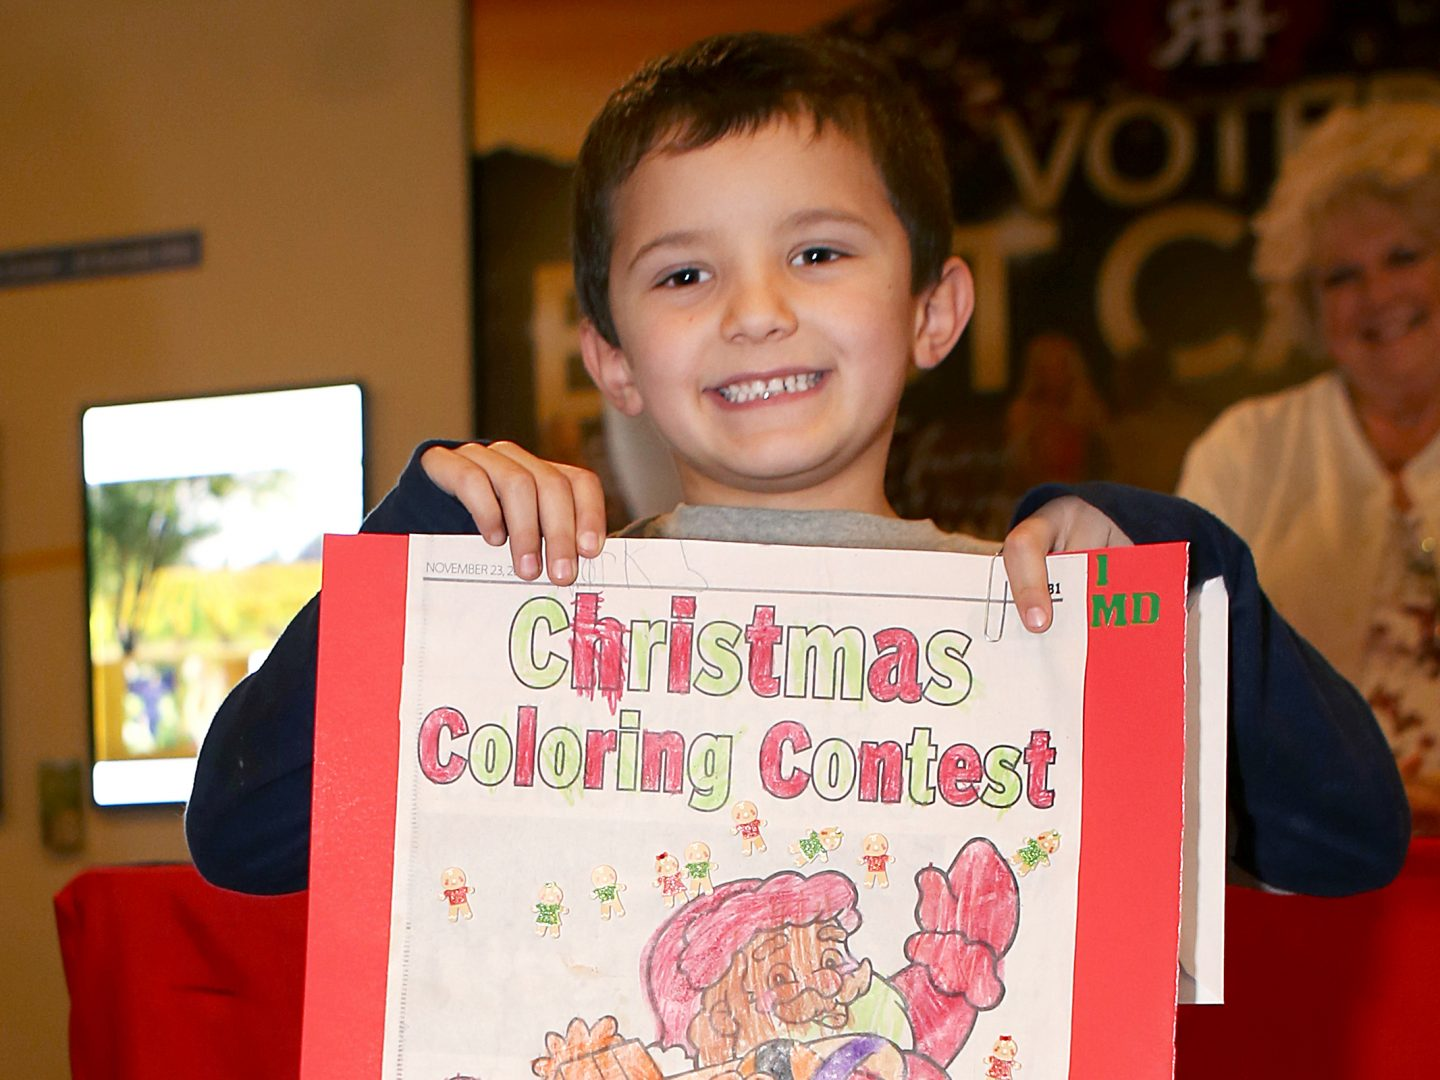 Young artists show holiday spirit in creative ways